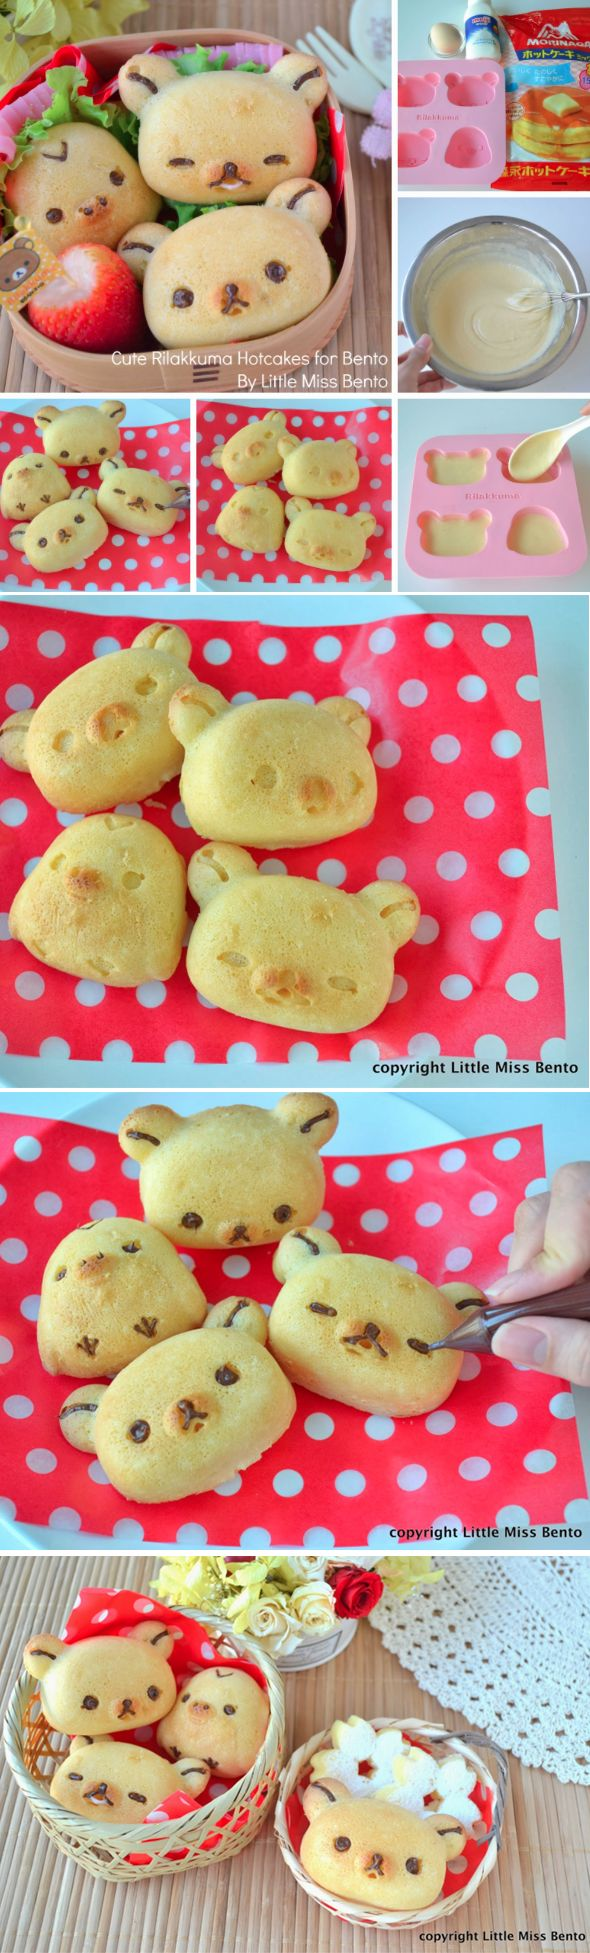 // Rilakkuma Hotcakes Recipe for Bento! //